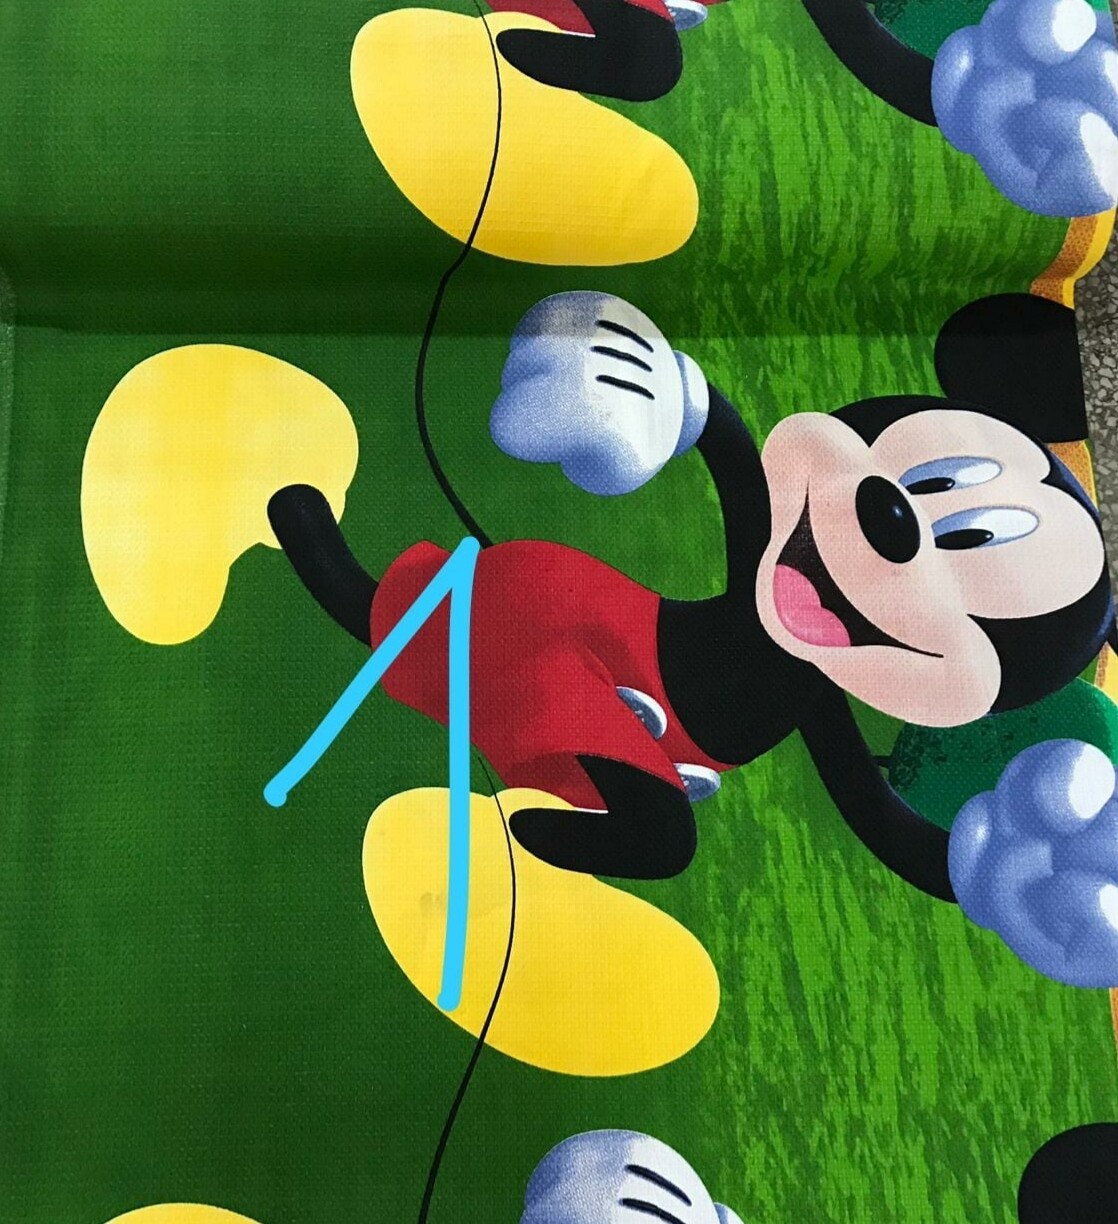 Lenjerie pat copii, model Mickey Mouse